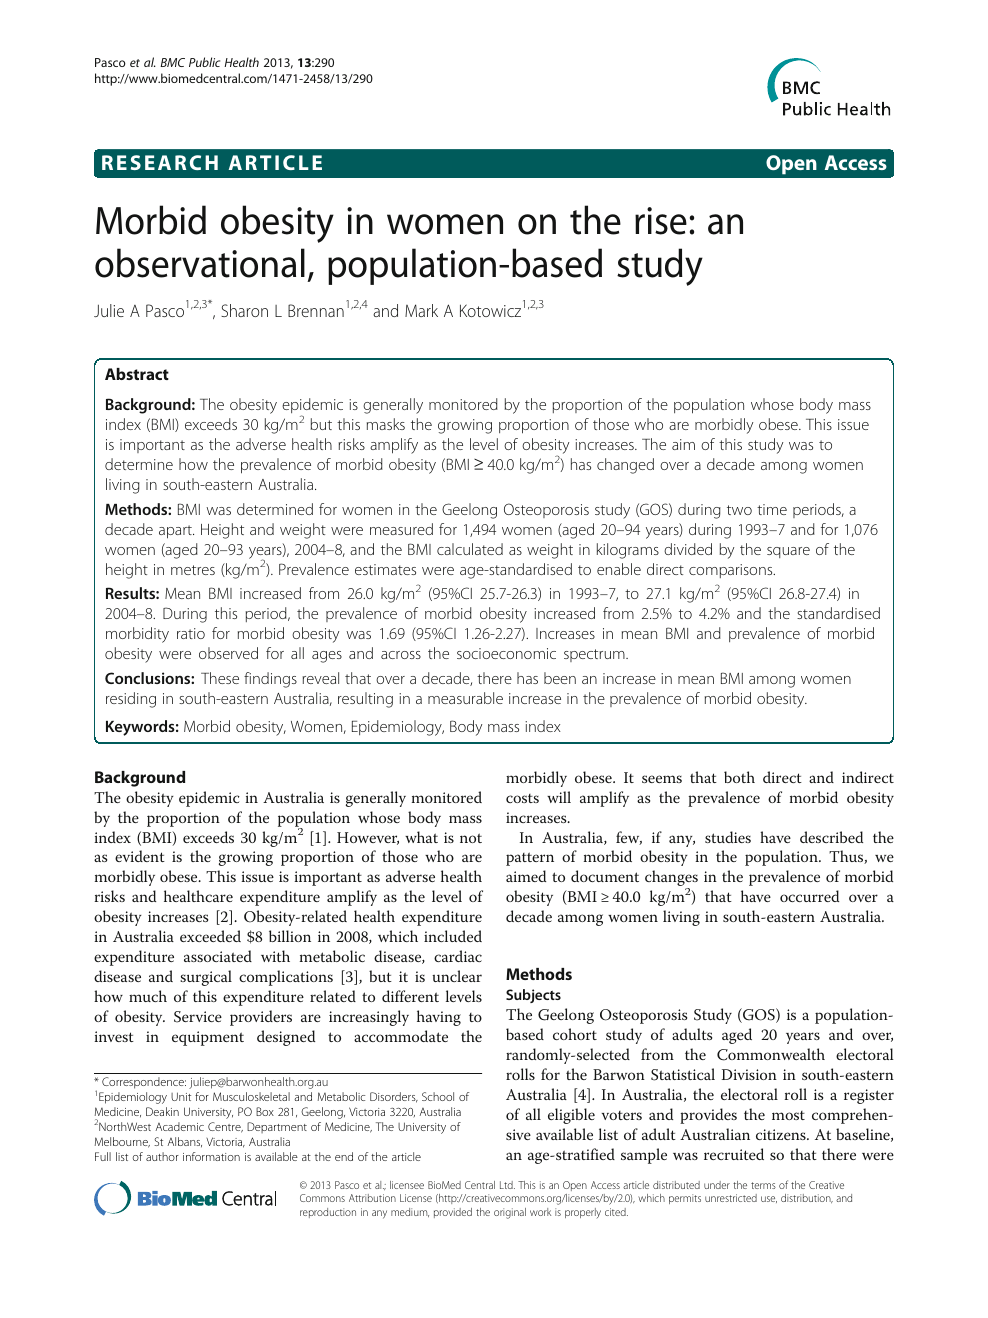 Morbid Obesity In Women On The Rise An Observational Population Based Study Topic Of Research Paper In Health Sciences Download Scholarly Article Pdf And Read For Free On Cyberleninka Open Science Hub